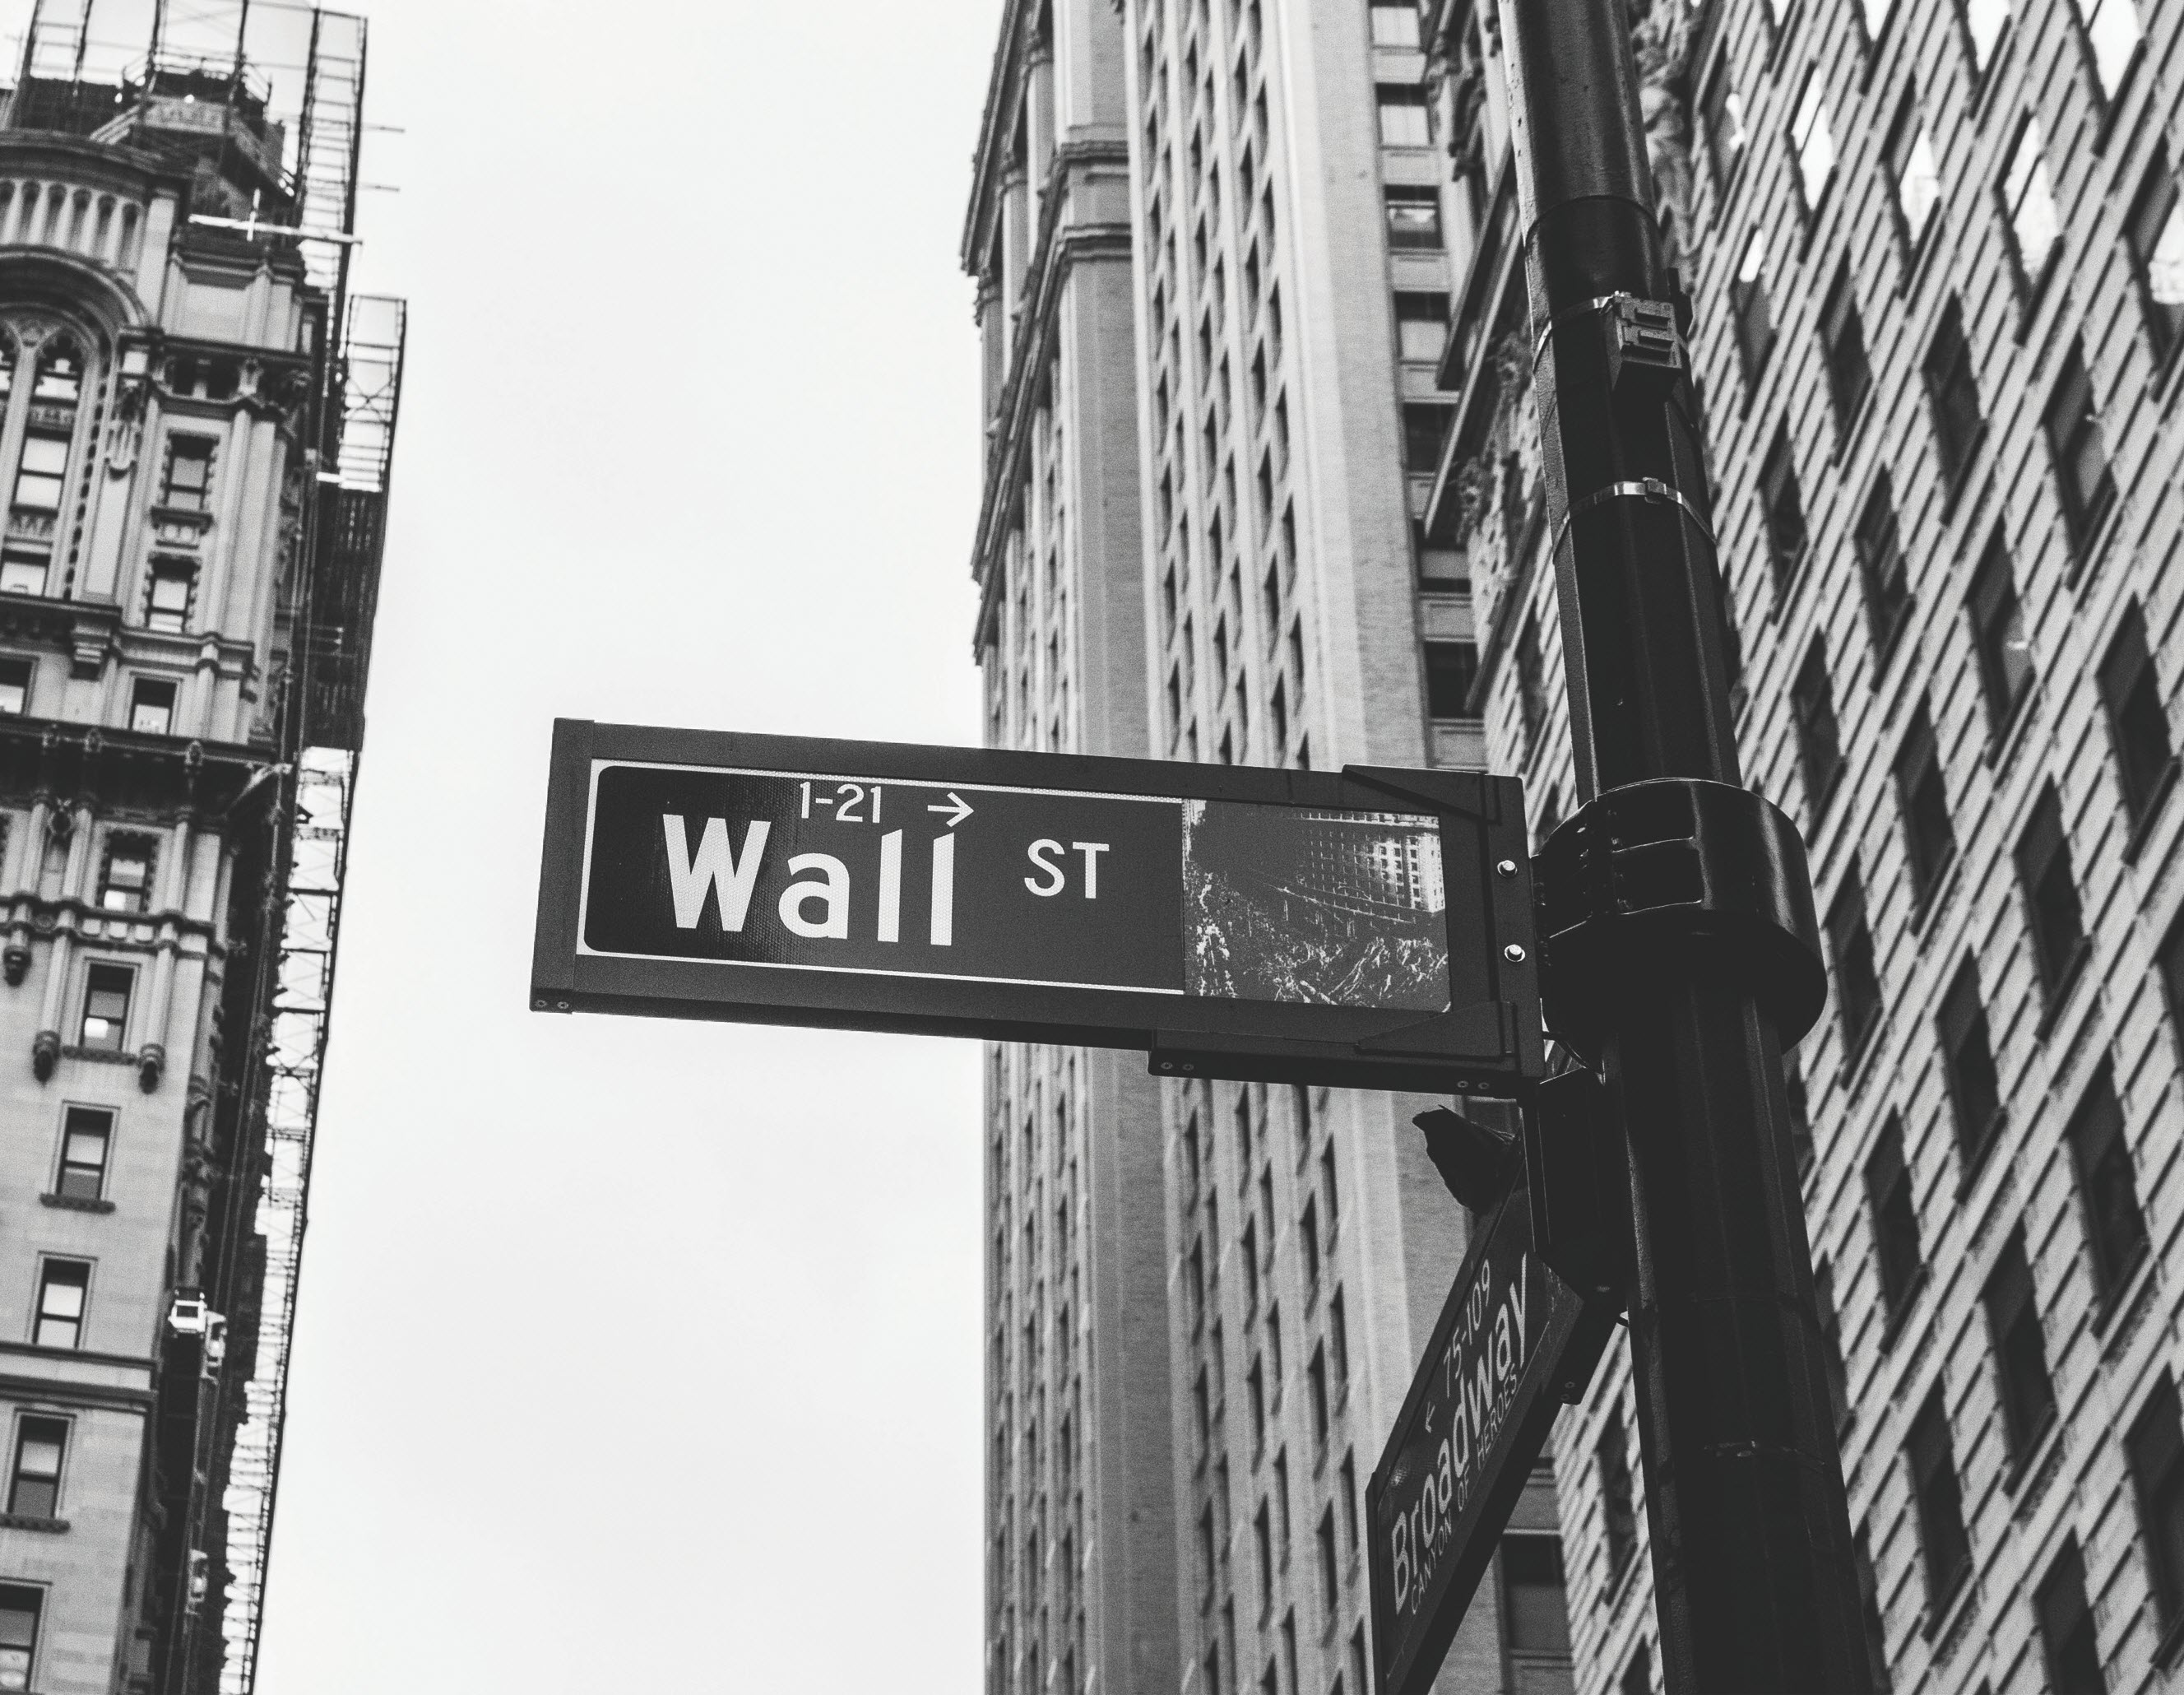 photo of Wall Street sign in NYC | Photo by Chris Li on Unsplash